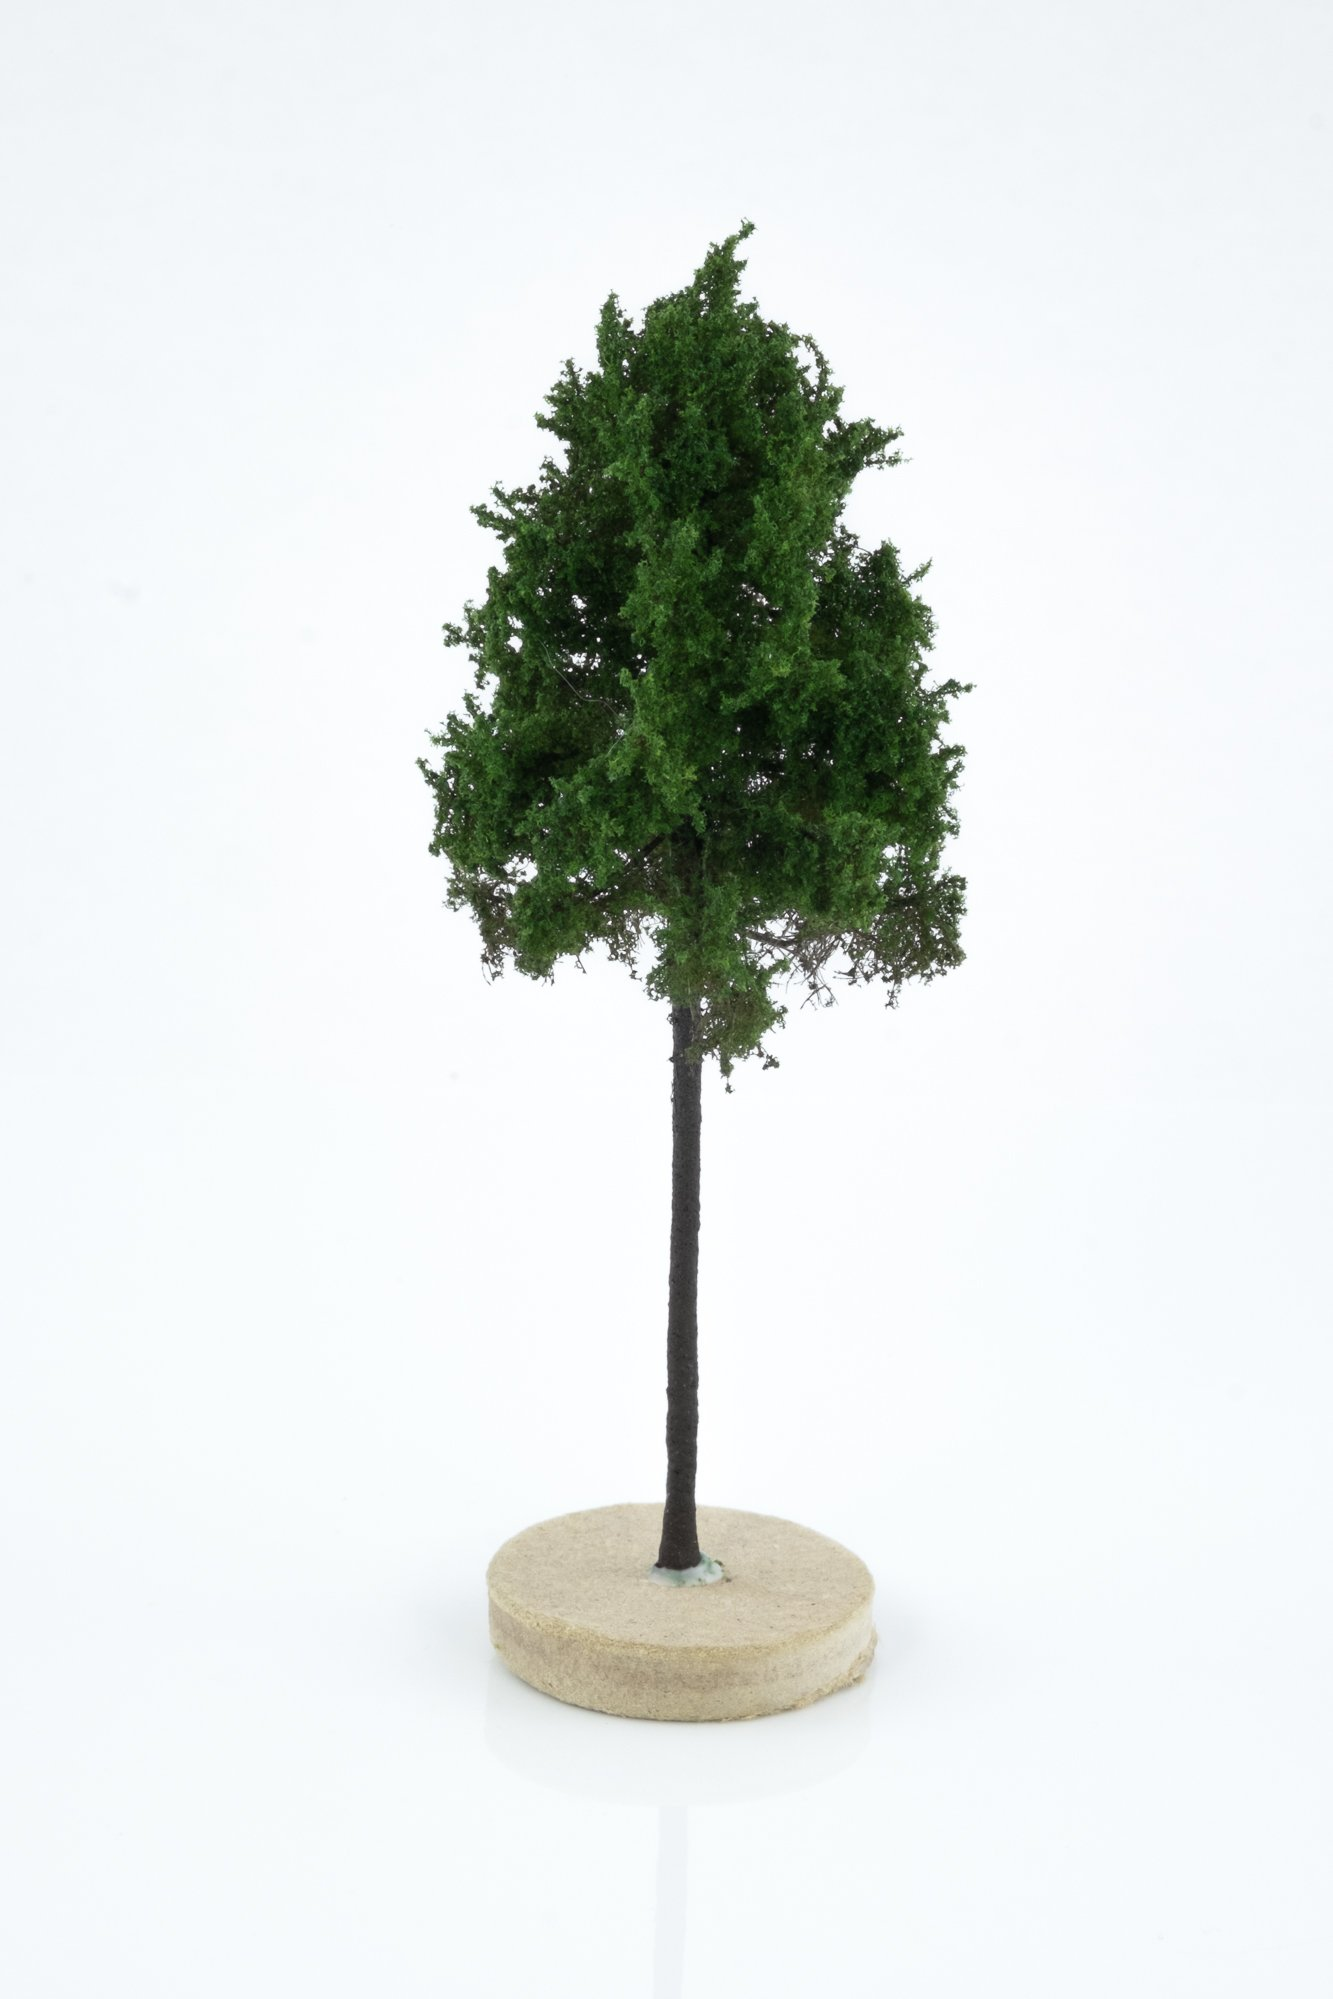 Hand-made, green, forest larch tree model. Size between 8 and 12 cm. Made from high quality model supplies by Primo Models.